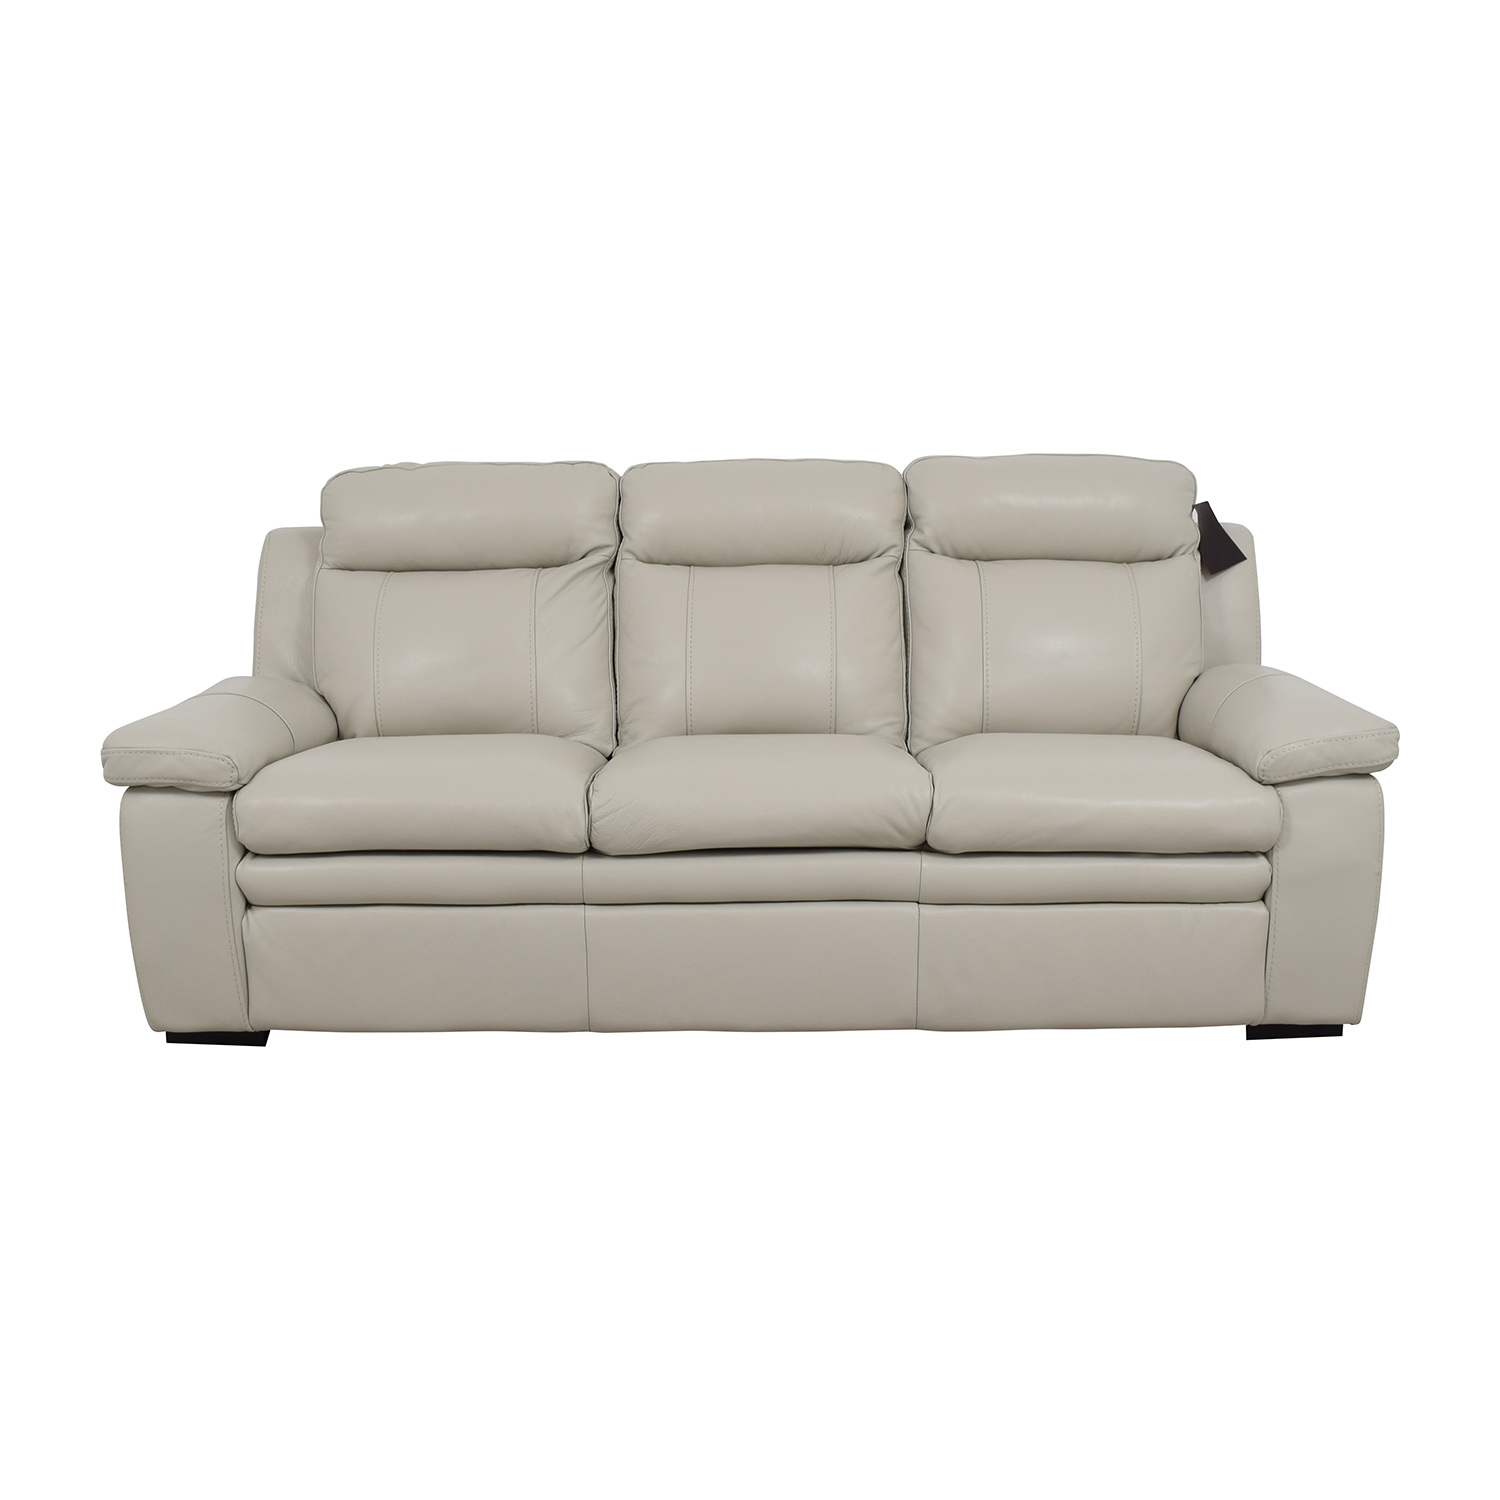 Shop Macys Macys Zane White Leather Sofa Online ...